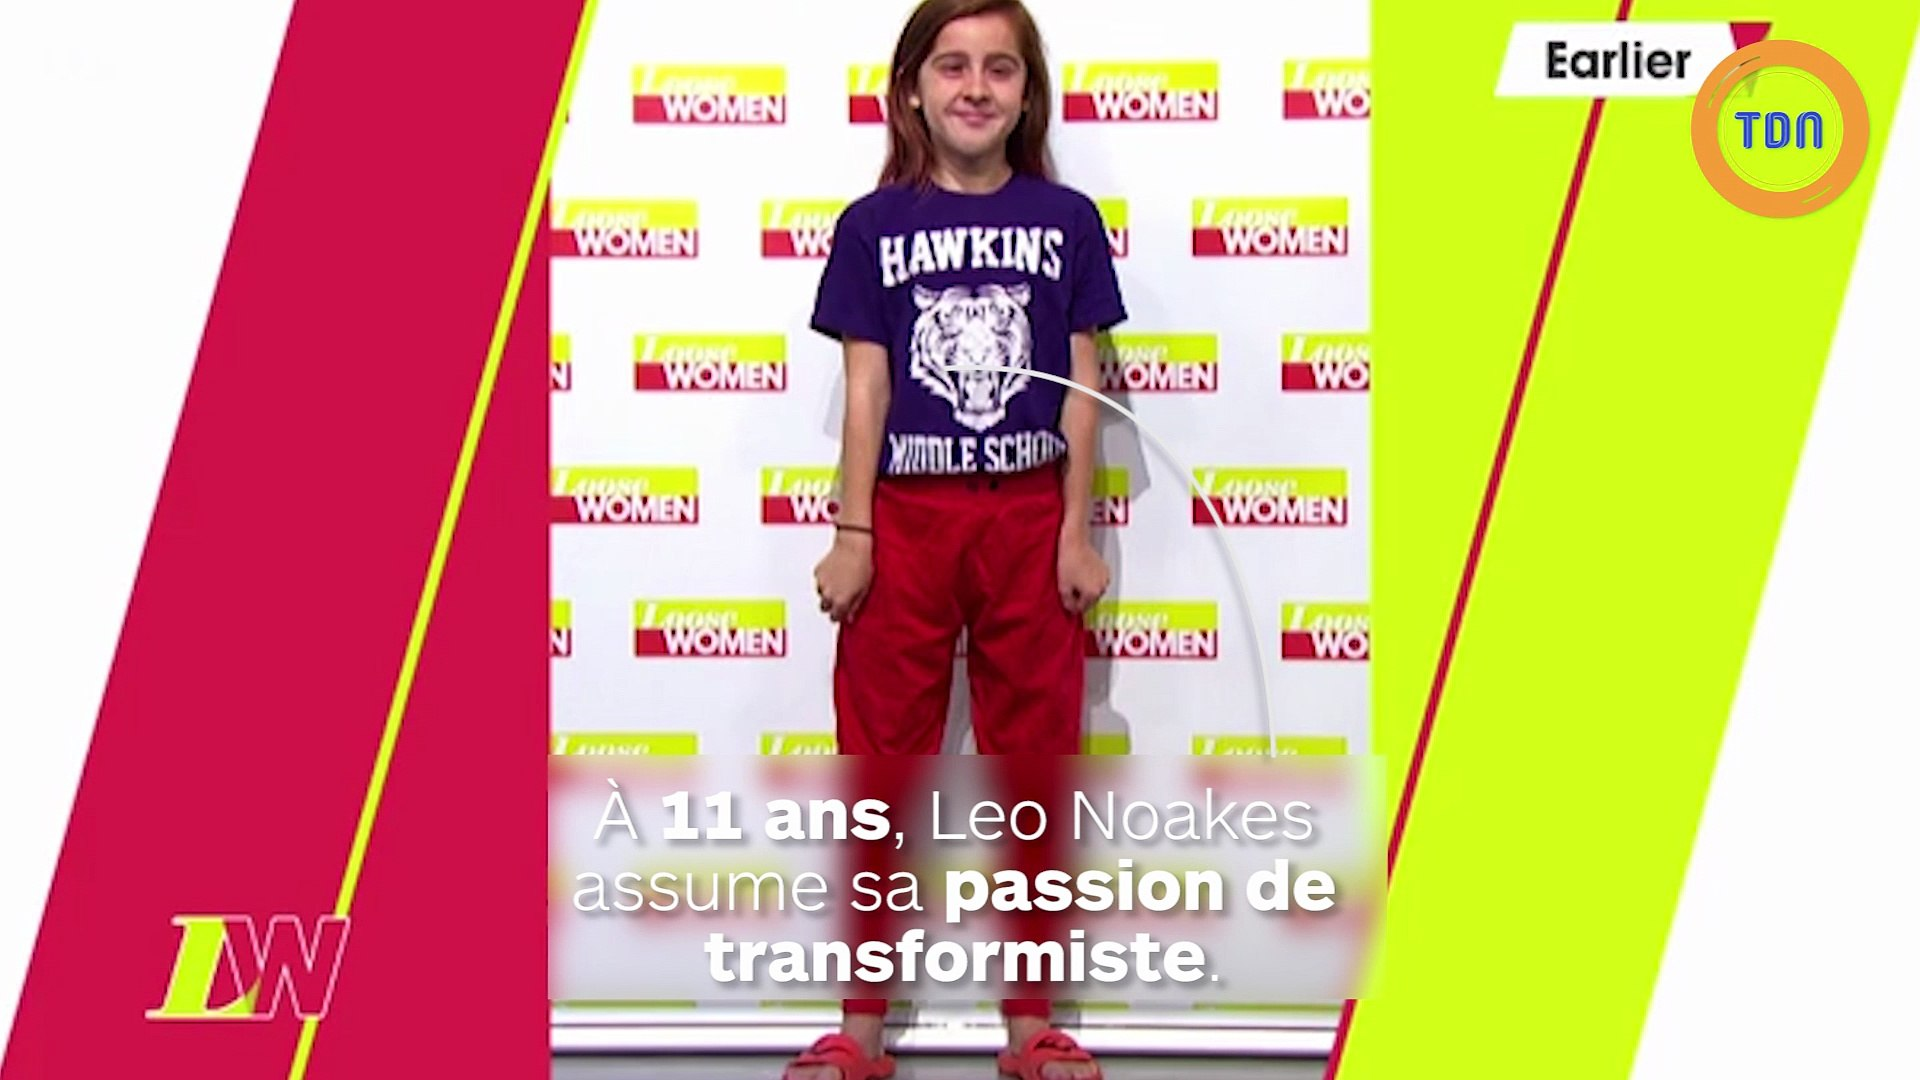 À 11 ans, il a pour passion de se transformer en drag queen et l'assume à la télé